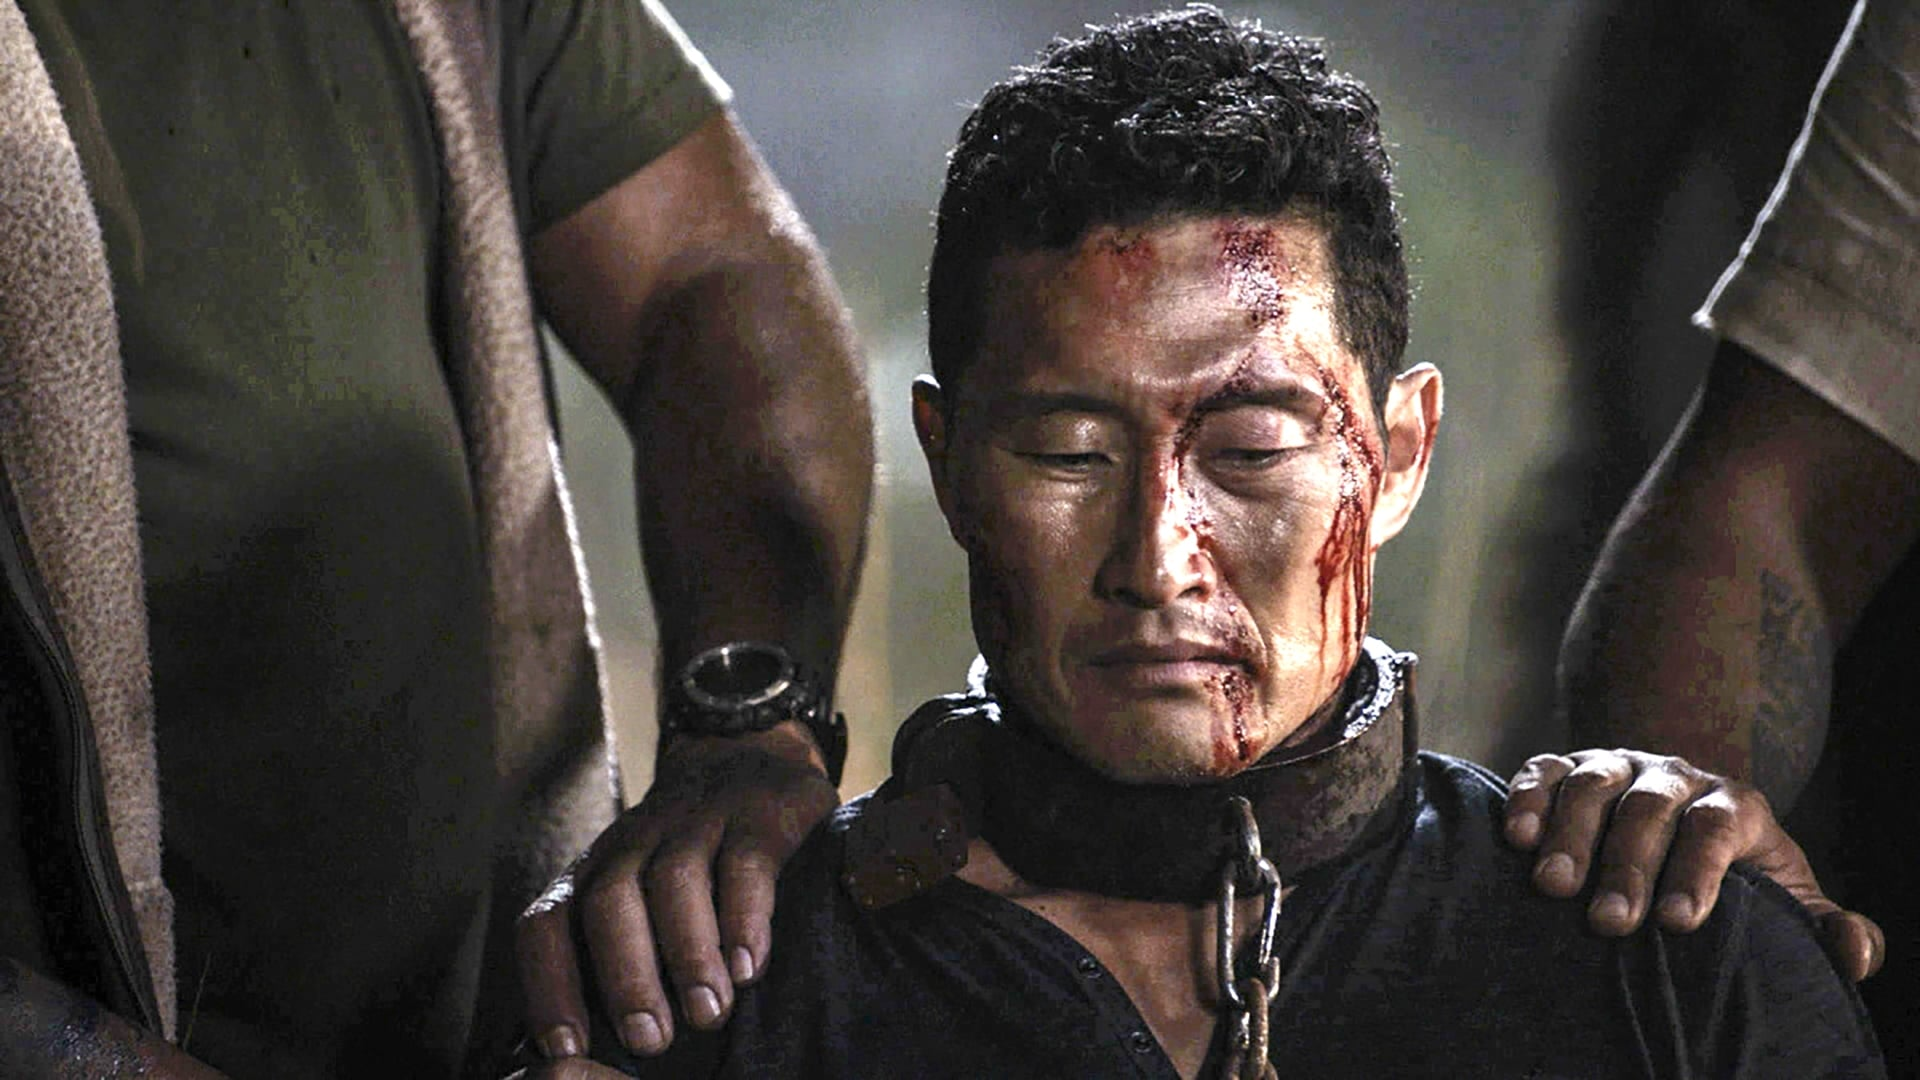 Hawaii Five-0 Season 7 :Episode 12  Ka 'aelike (The Deal)